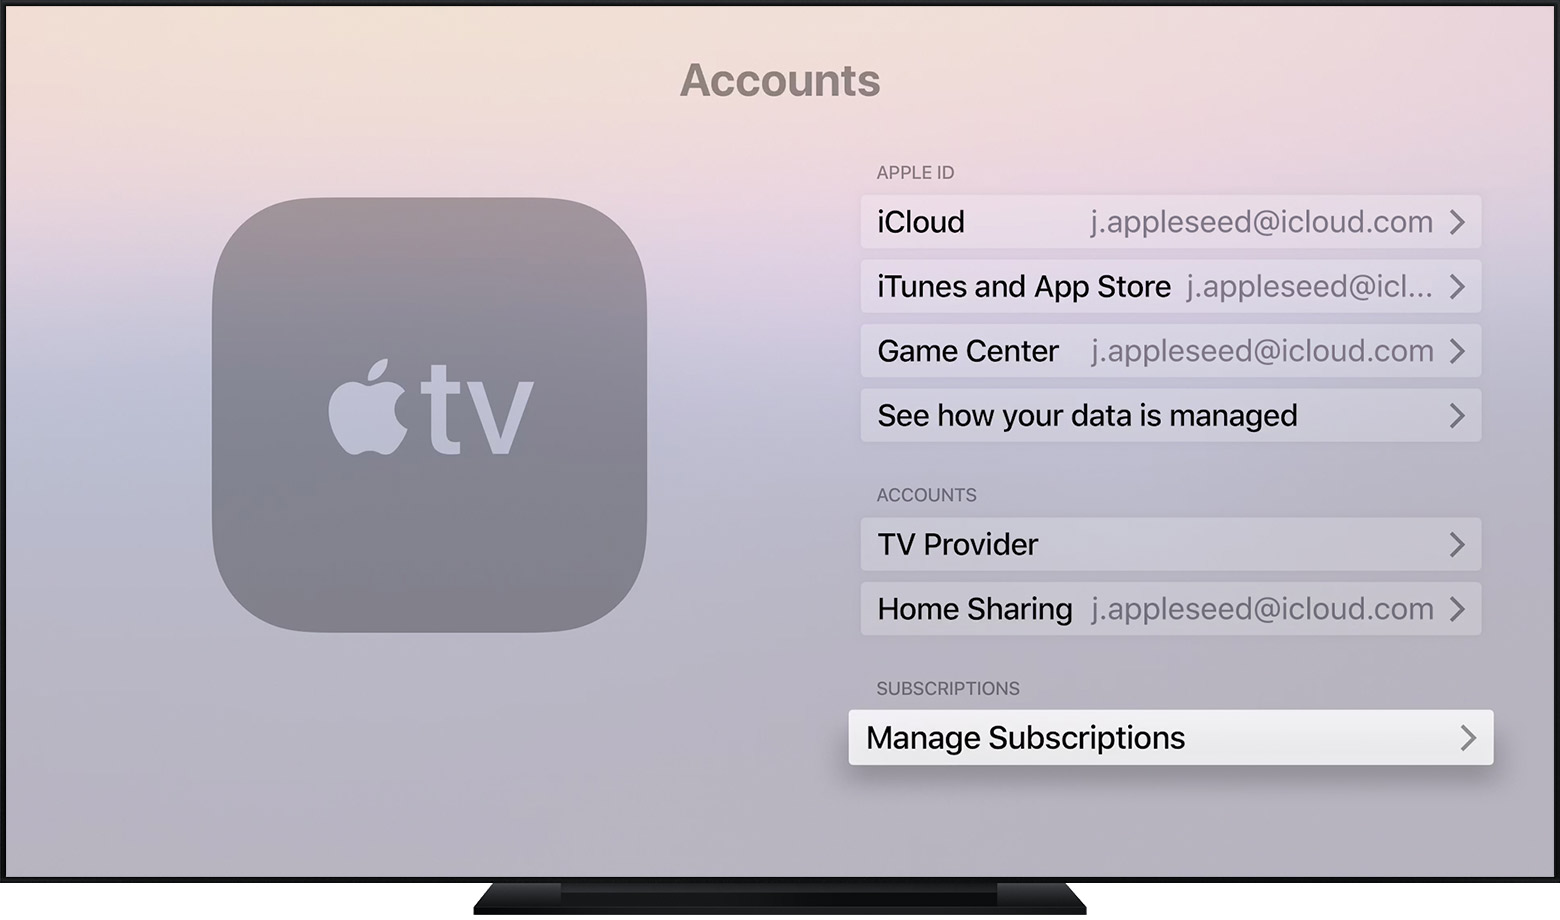 How To Modify Or Cancel Subscriptions On The App Store